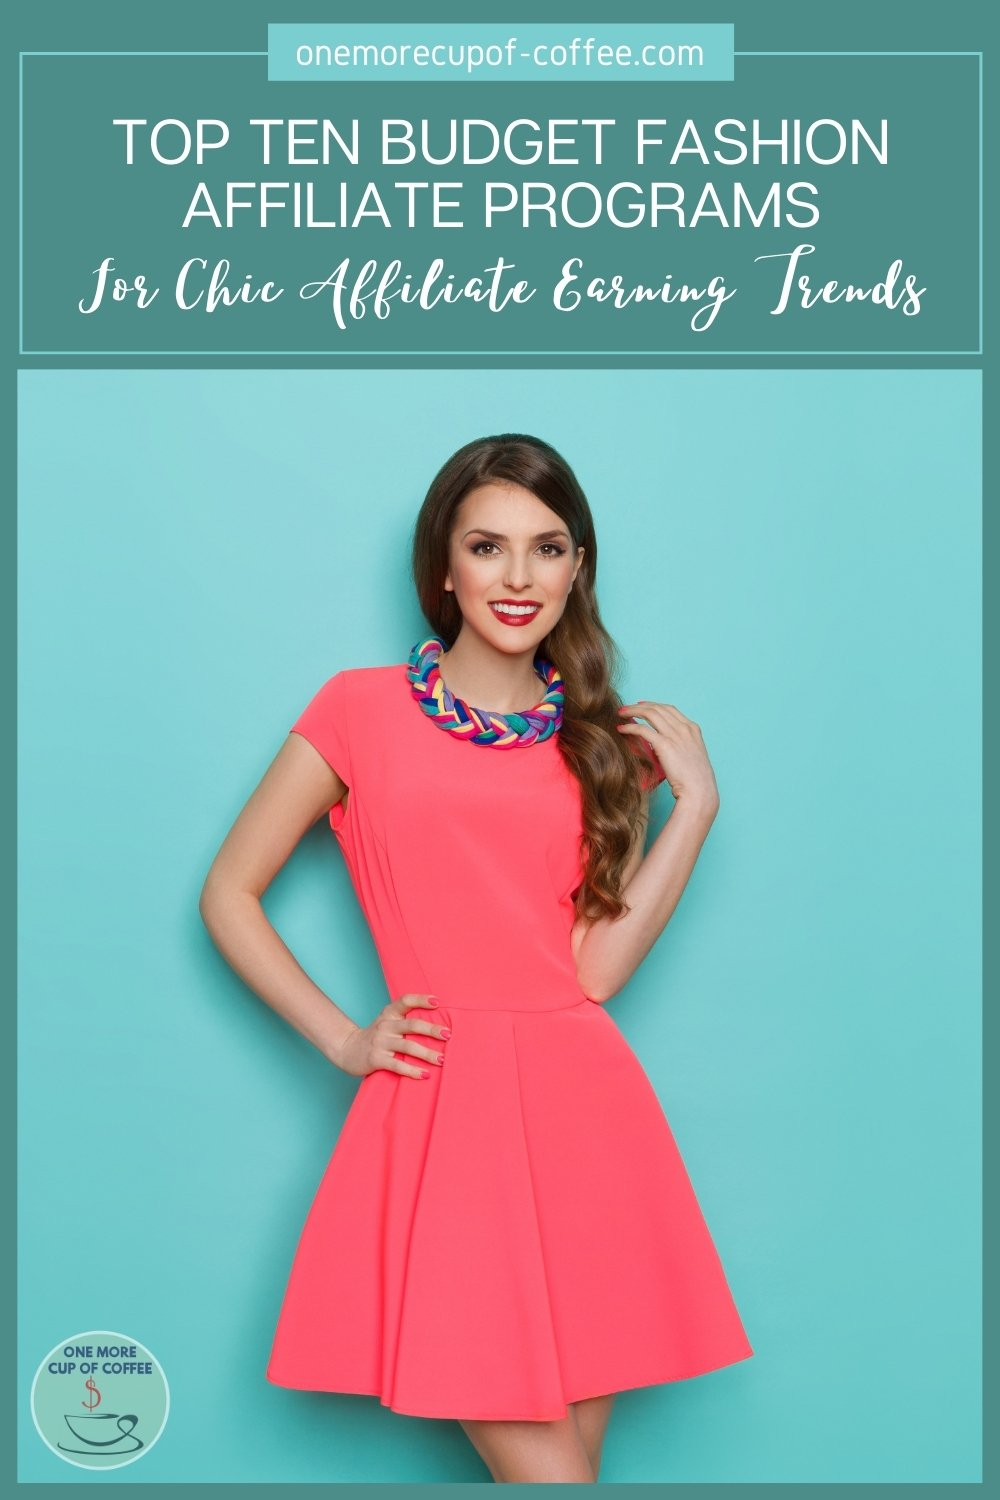 """female model in pink dress posing against a teal background, with text overlay """"Top Ten Budget Fashion Affiliate Programs For Chic Affiliate Earning Trends"""""""